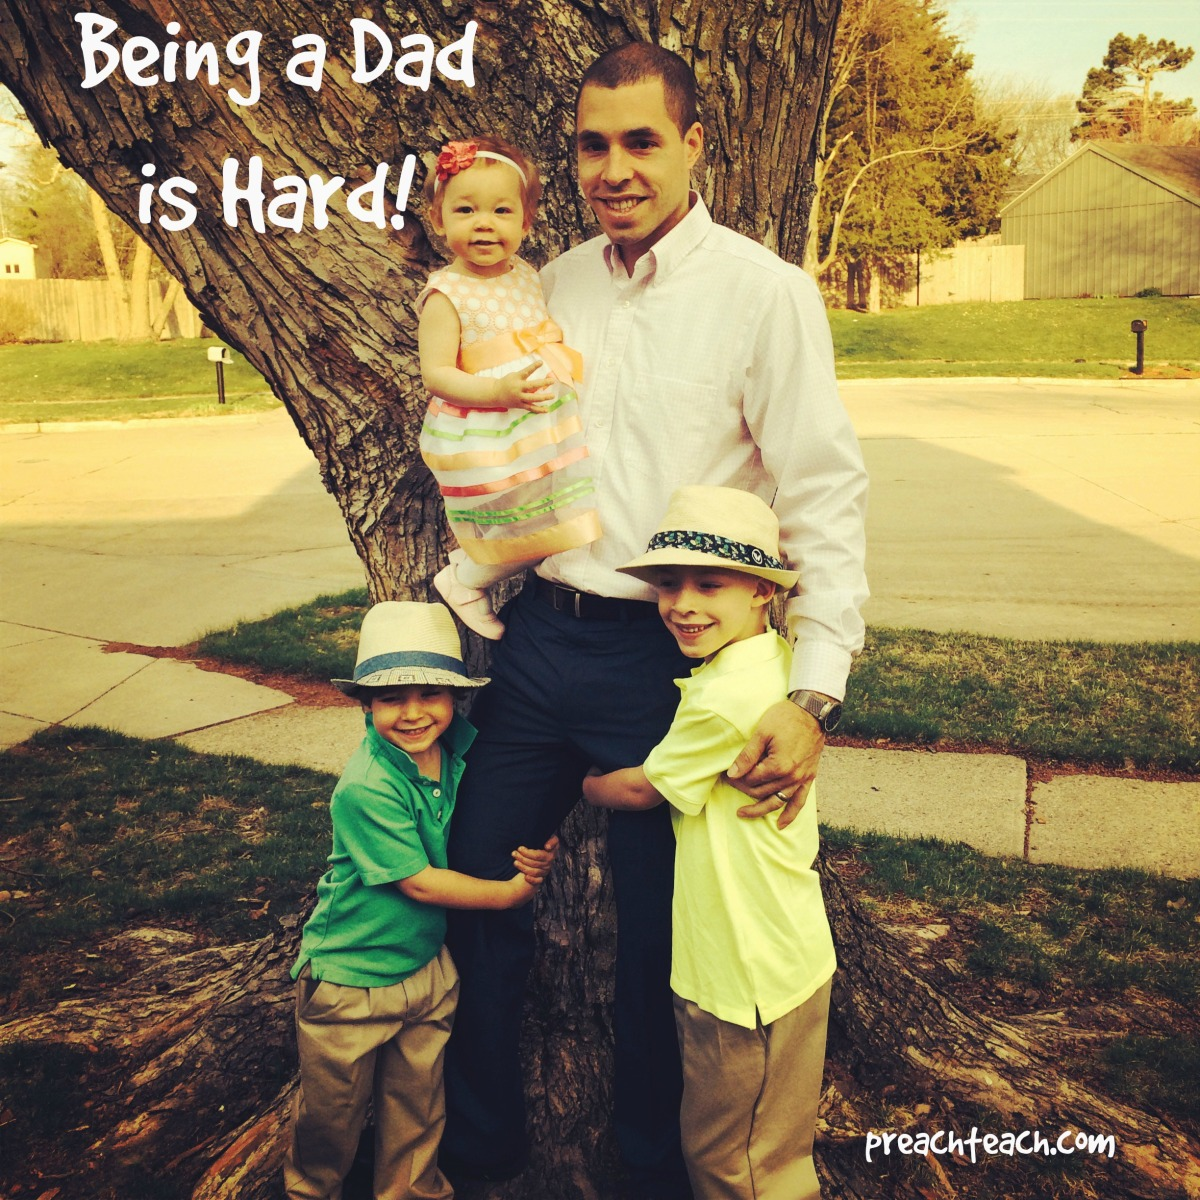 It's Hard To Be A Dad.